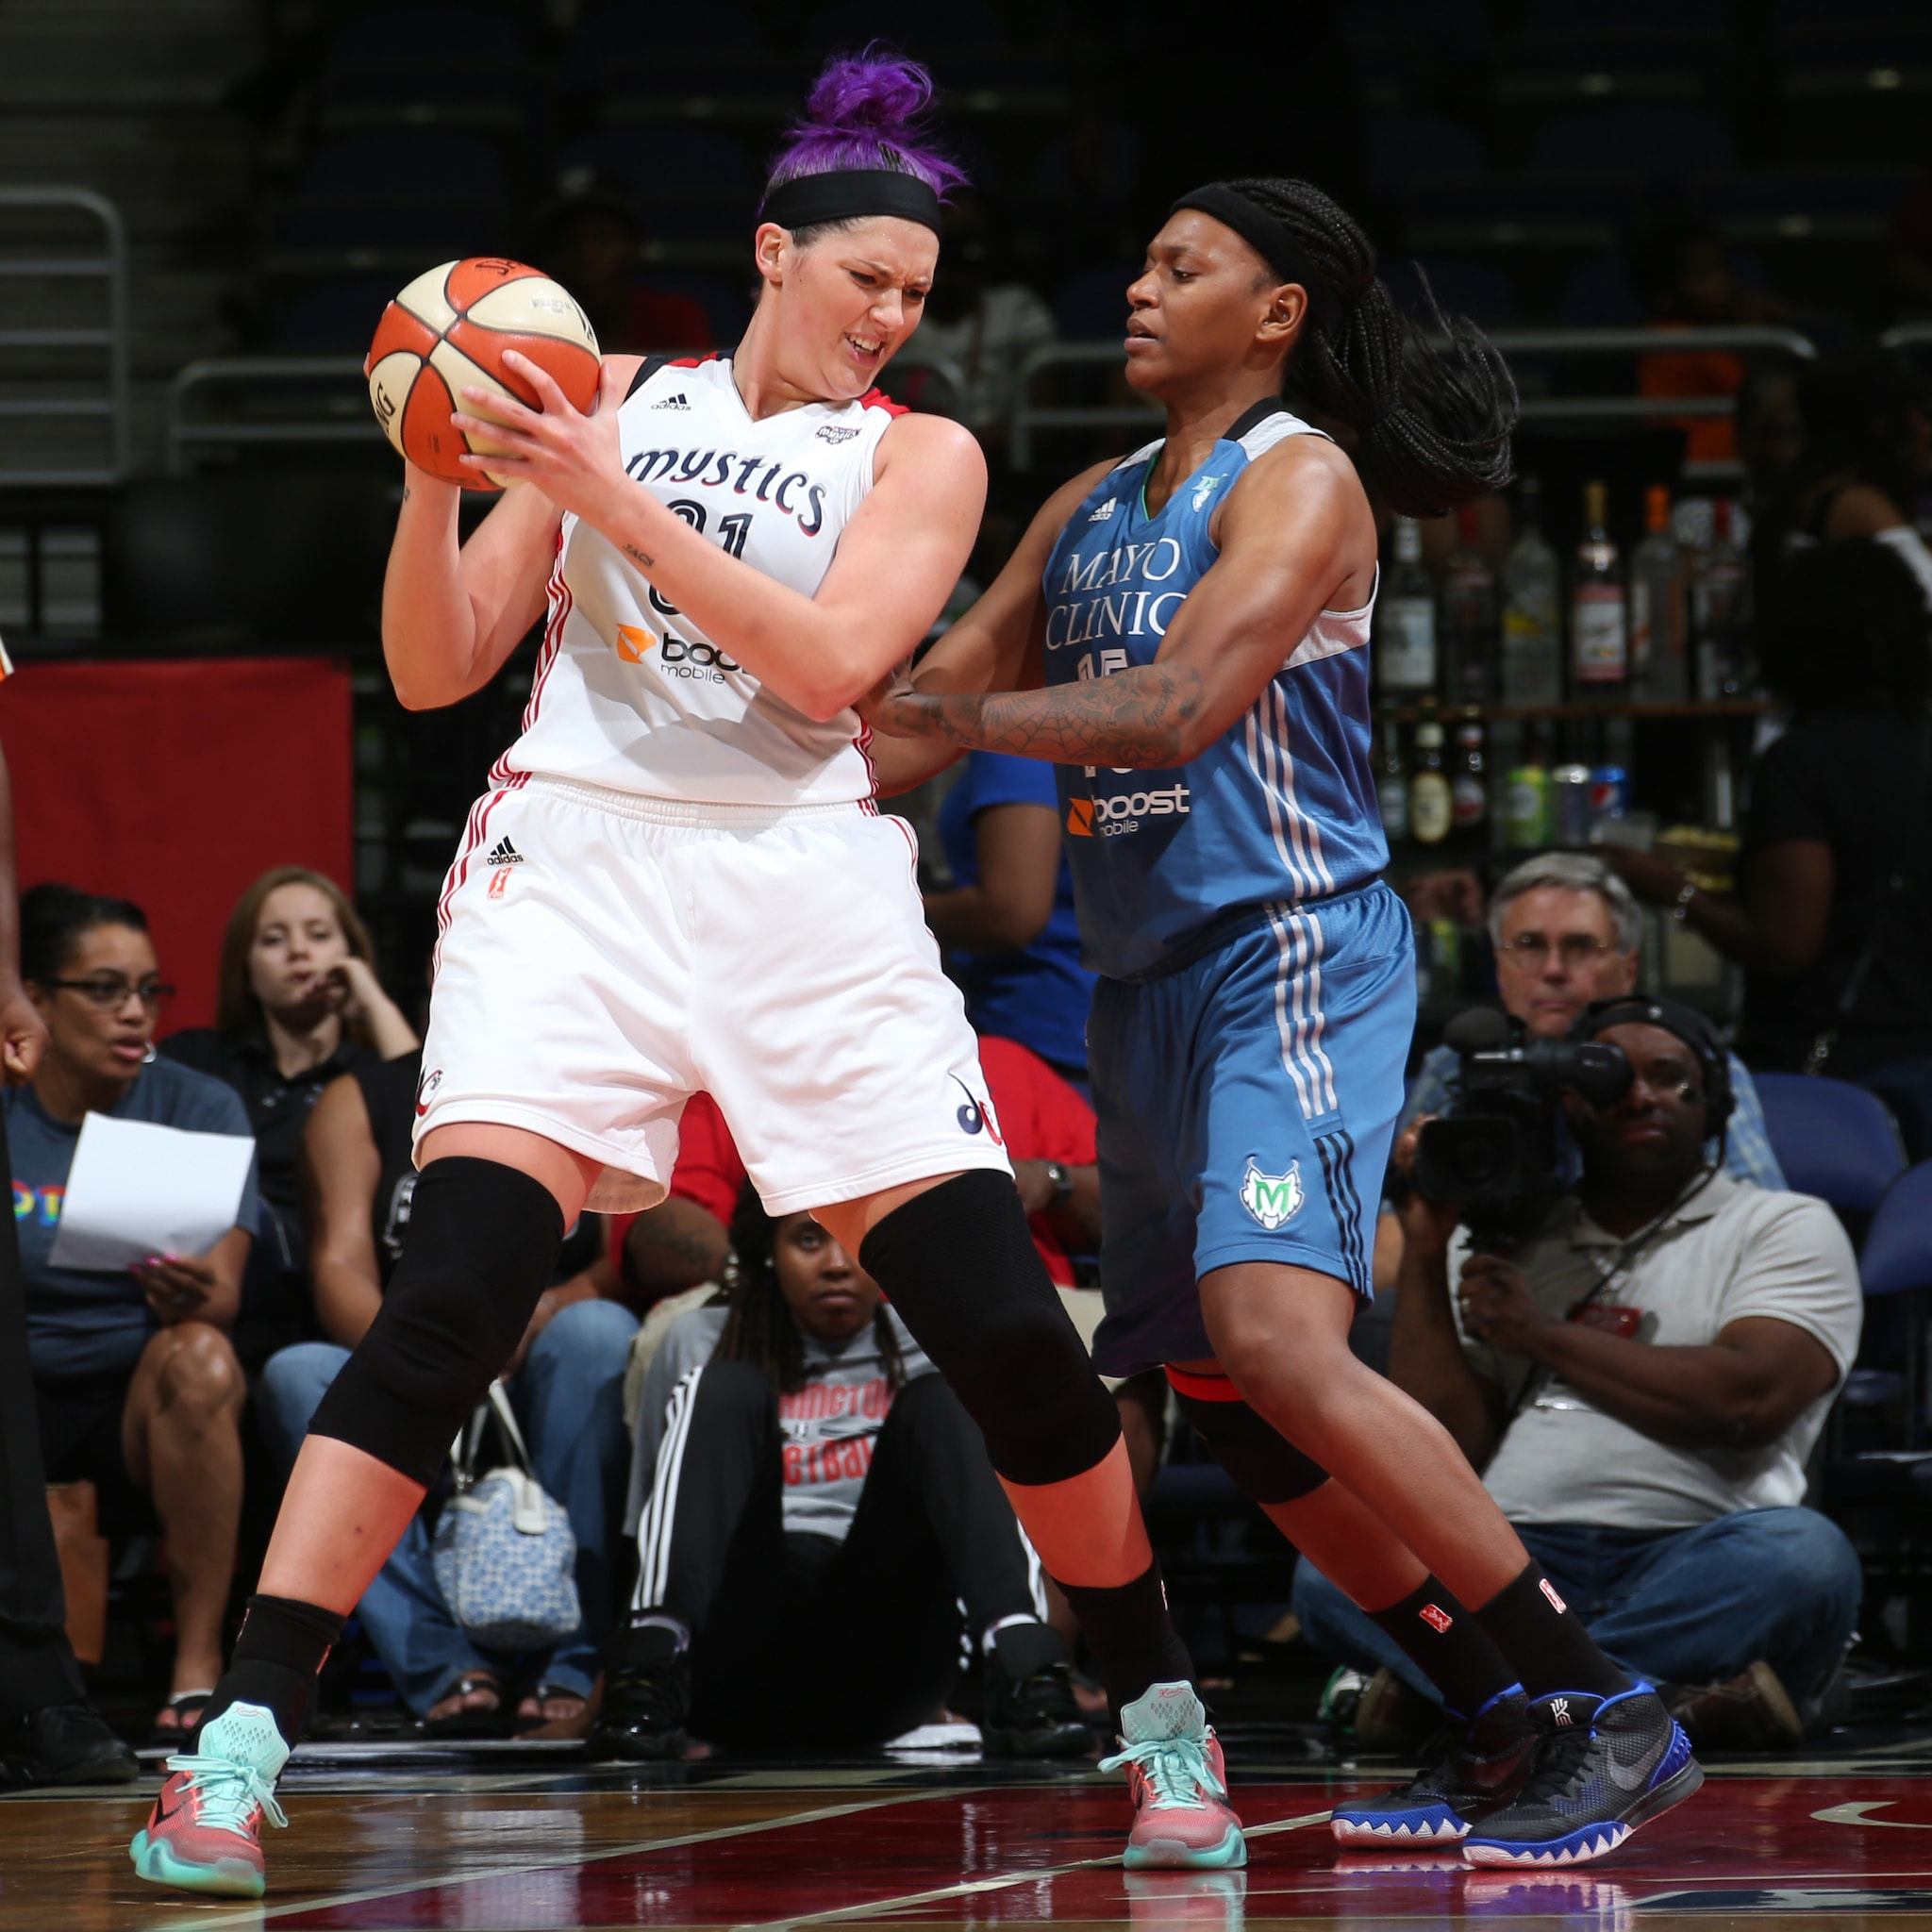 Mystics center Stefanie Dolson scored 12 points and grabbed seven rebounds in Washington's win over the Lynx.